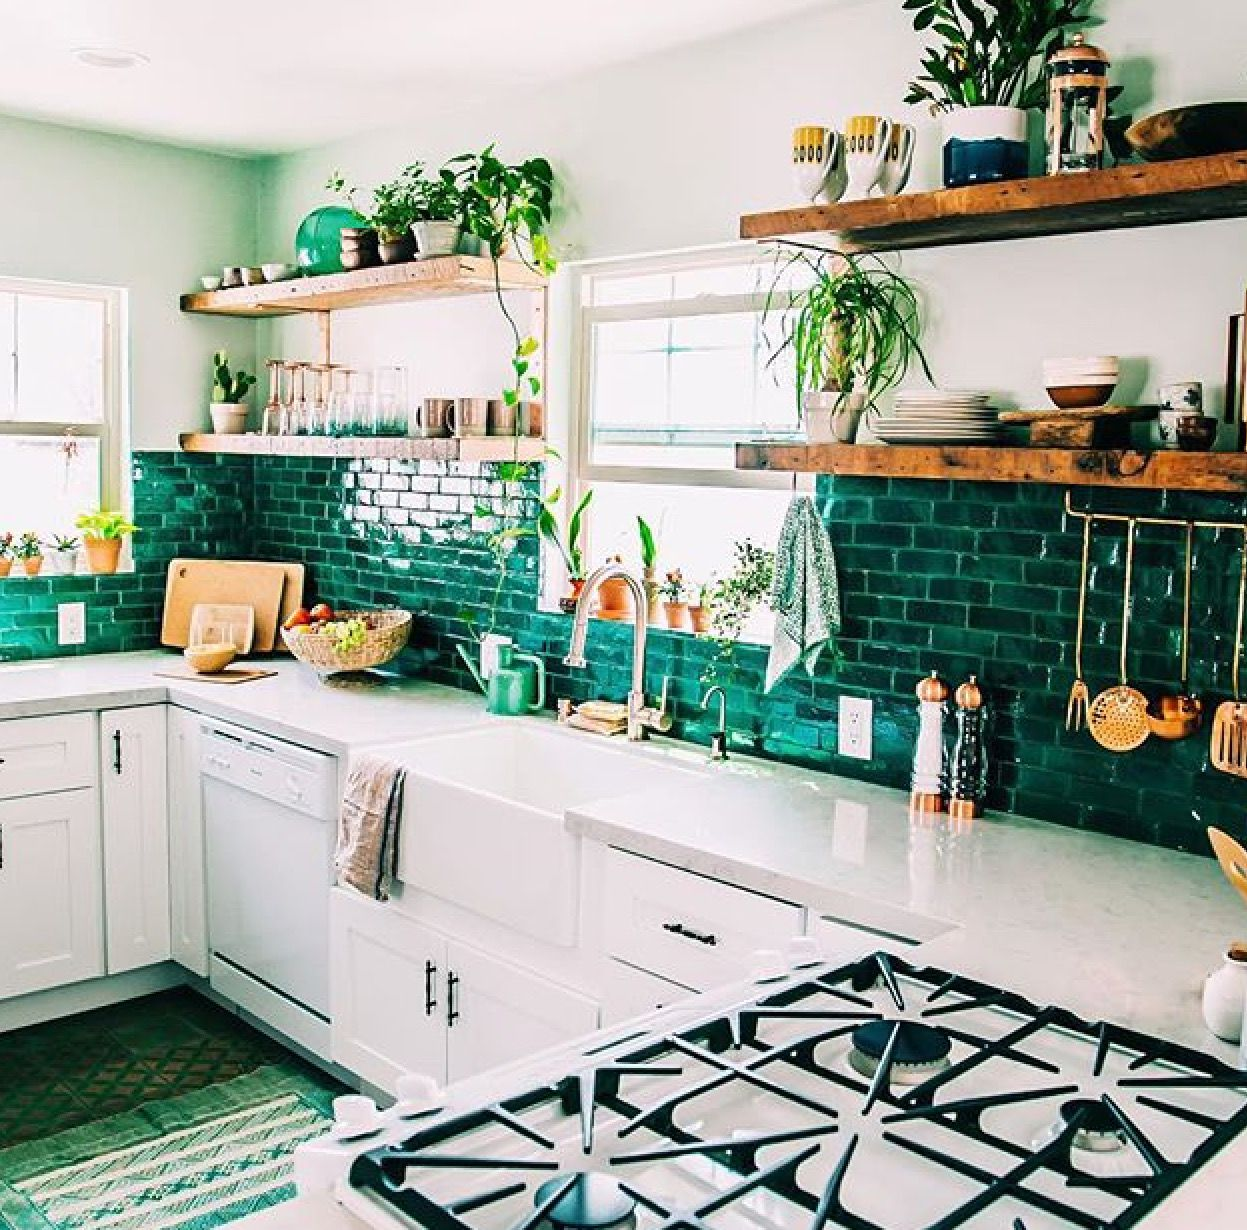 23 Best Copper And Blush Home Decor Ideas And Designs For 2019: Pin By Leah Anderson-Wimberly On My Kitchen Dreams In 2019